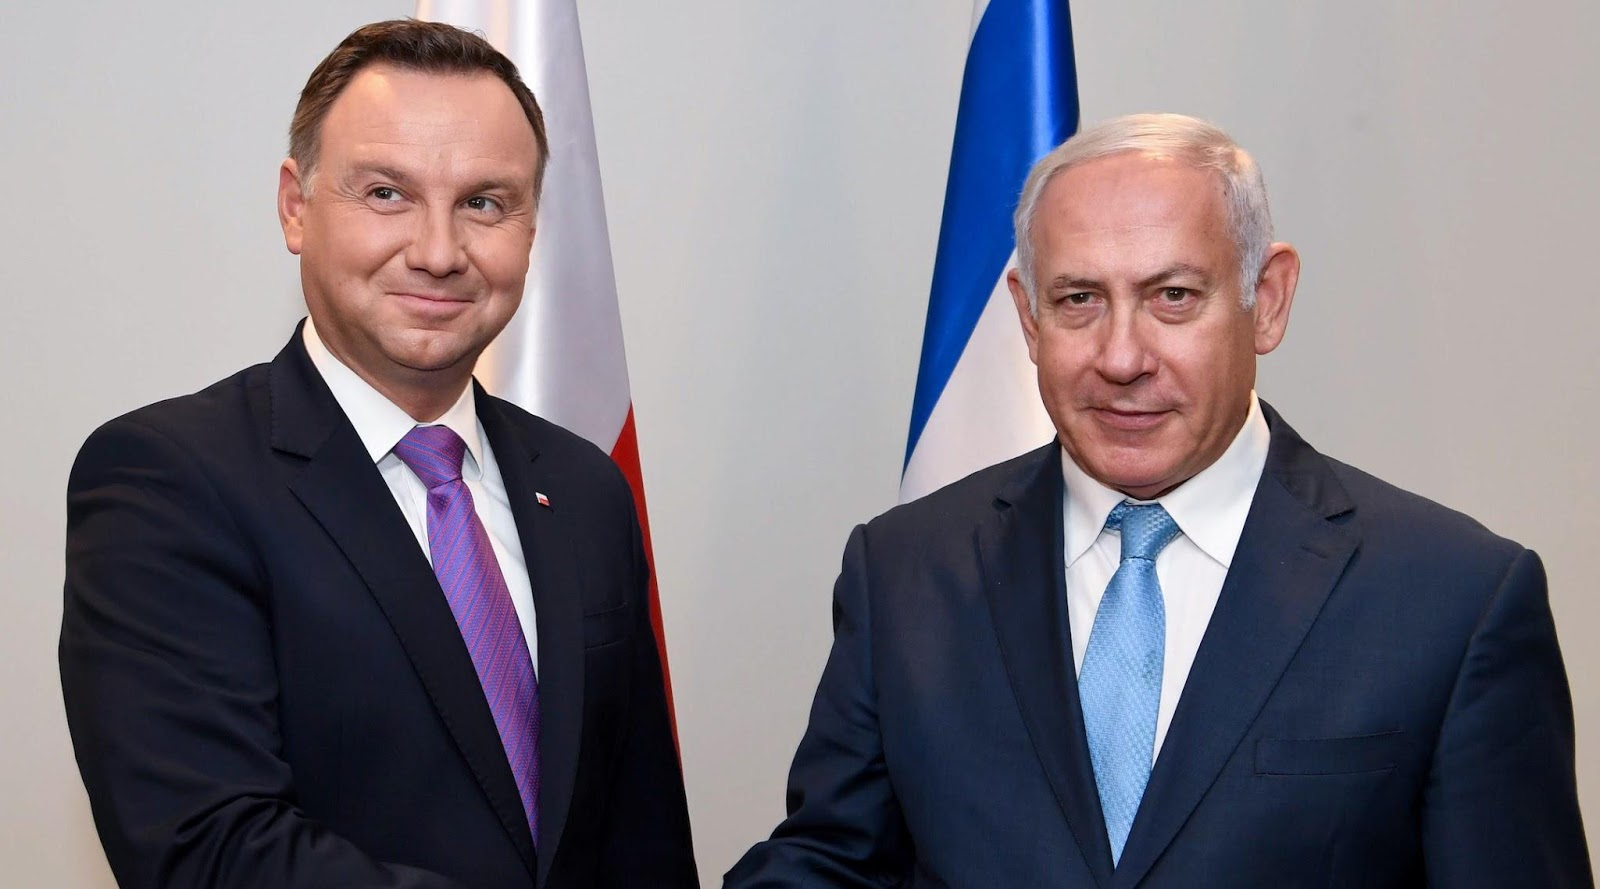 Polish President Andrezj Duda and Israeli Prime Minister Benjamin Netanyahu. Photo Source:    jta.org via GPO